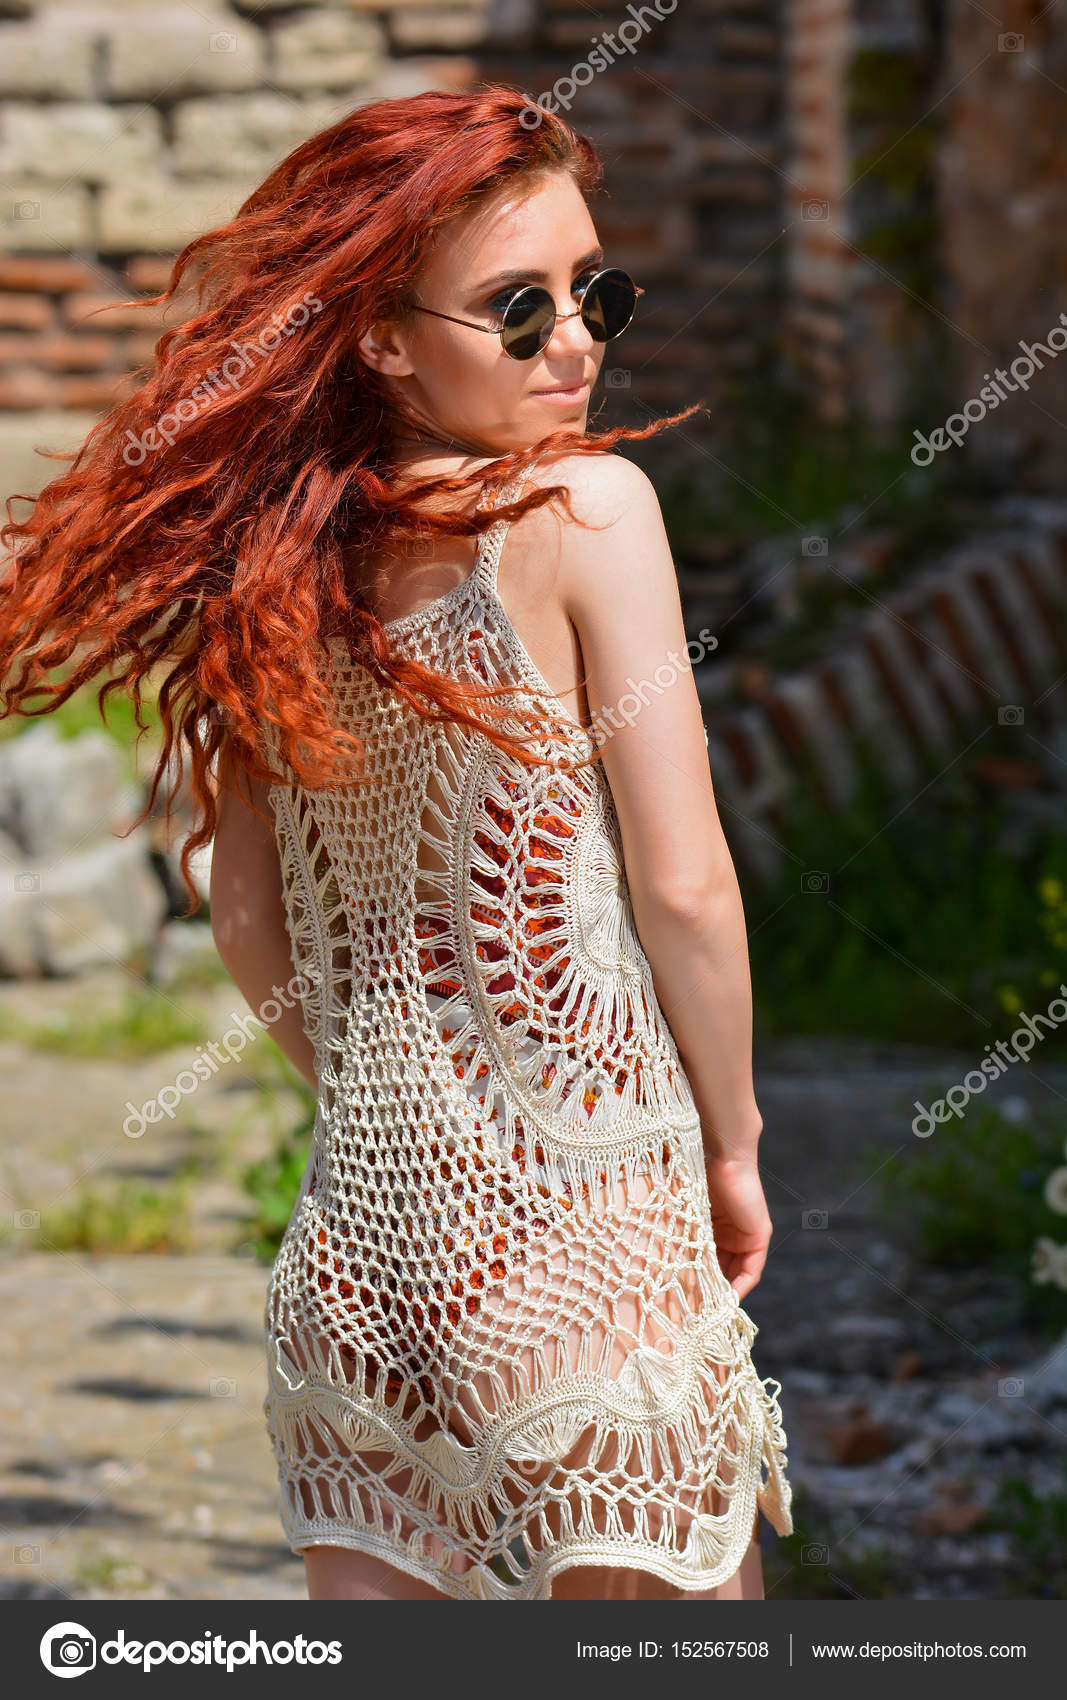 Remarkable, this com redhead yahoo sorry